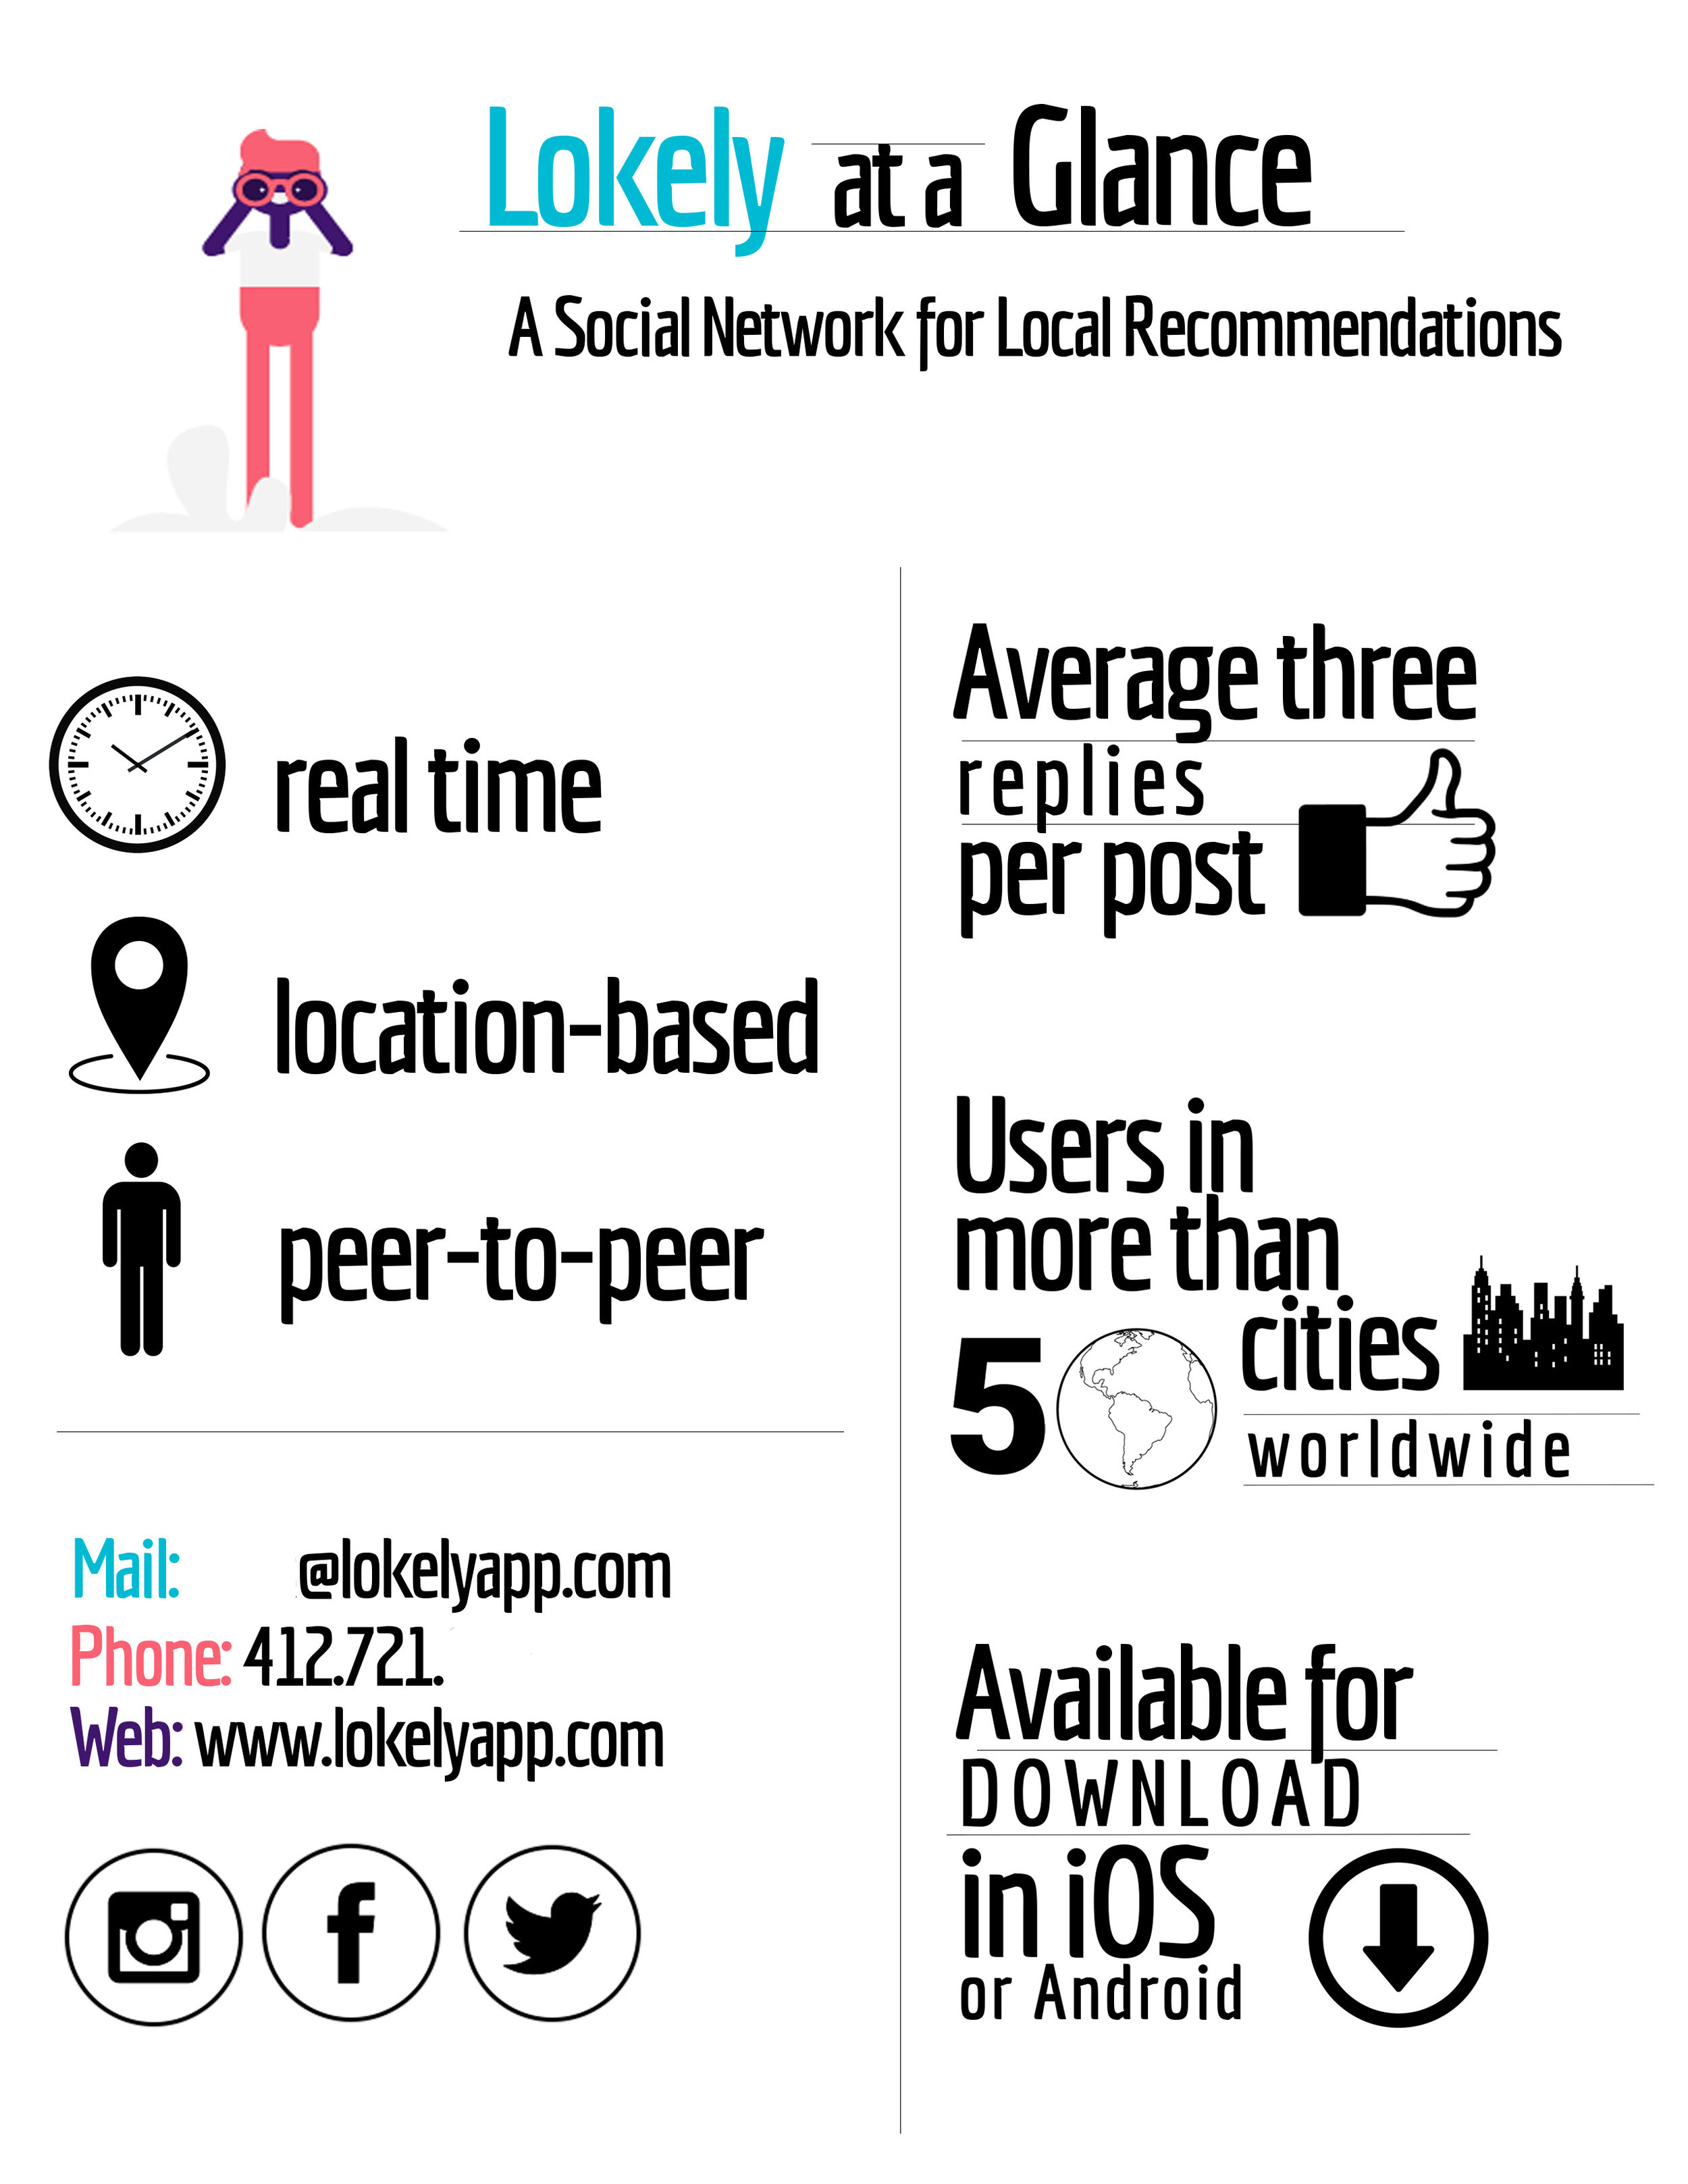 Lokely Infographic - As an app that helps users find geocentric suggestions for bars & restaurants, Lokely came to me with the goal of building out a set of infographics that would help new users learn of the apps functionality without being weighed down in text.